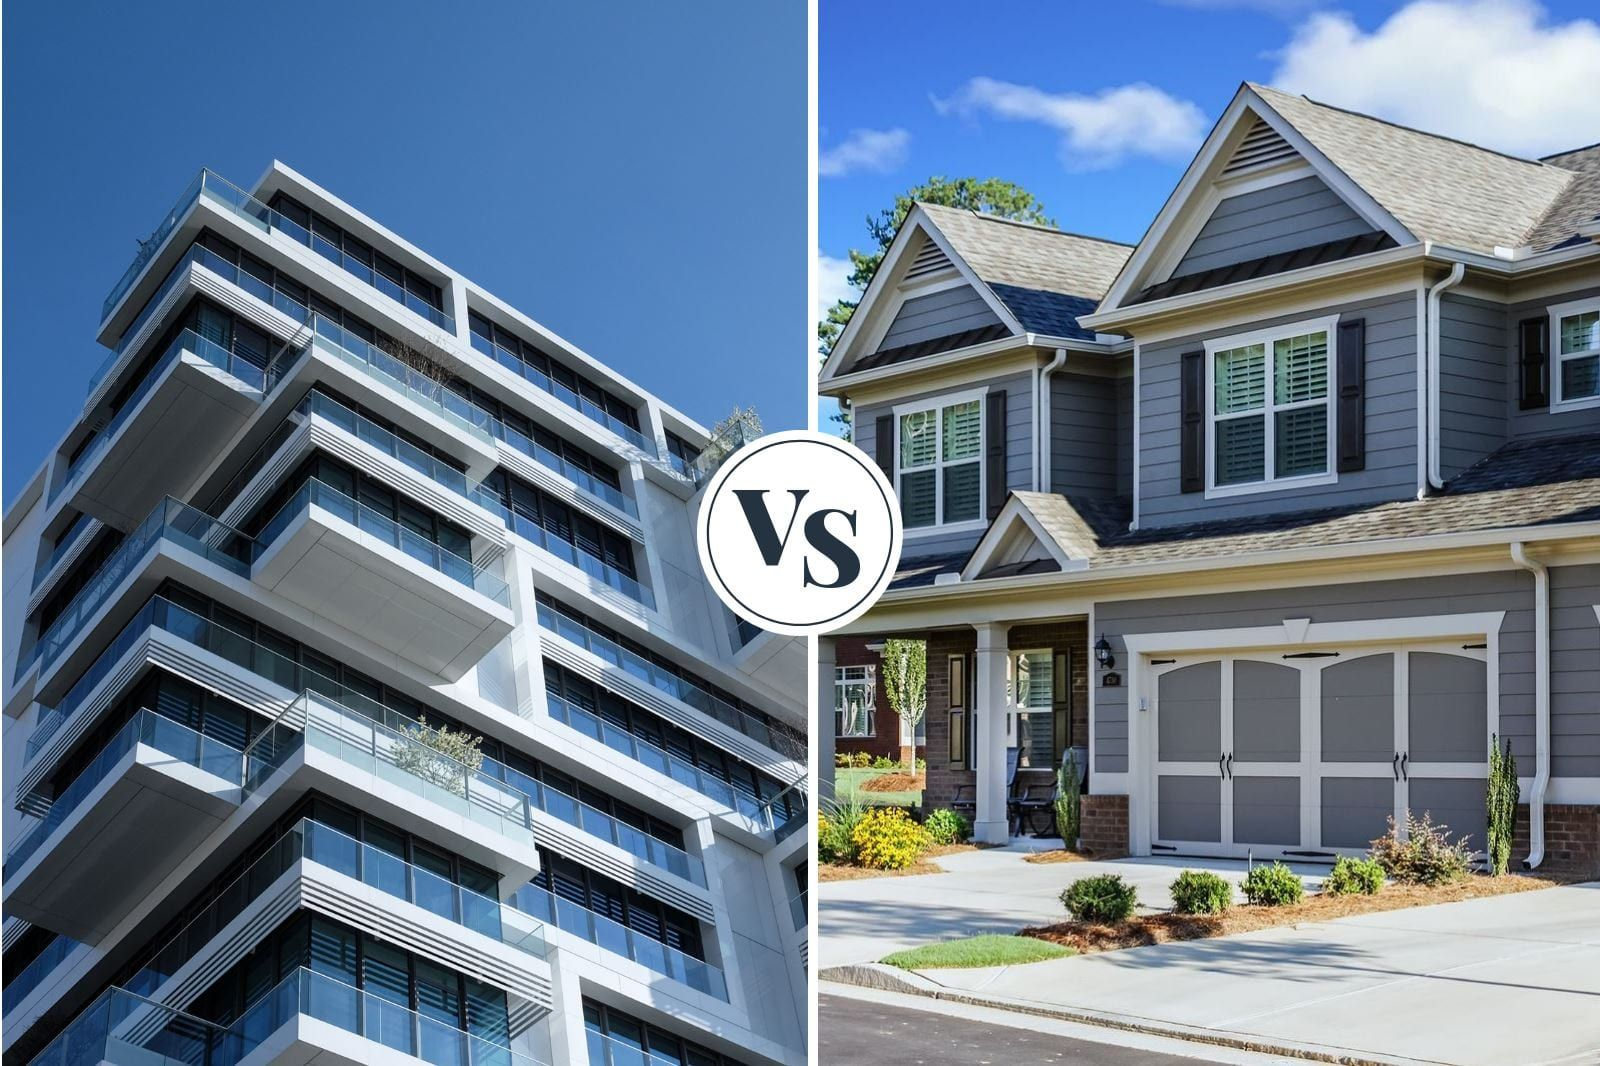 Condo vs townhouse which is the better real estate